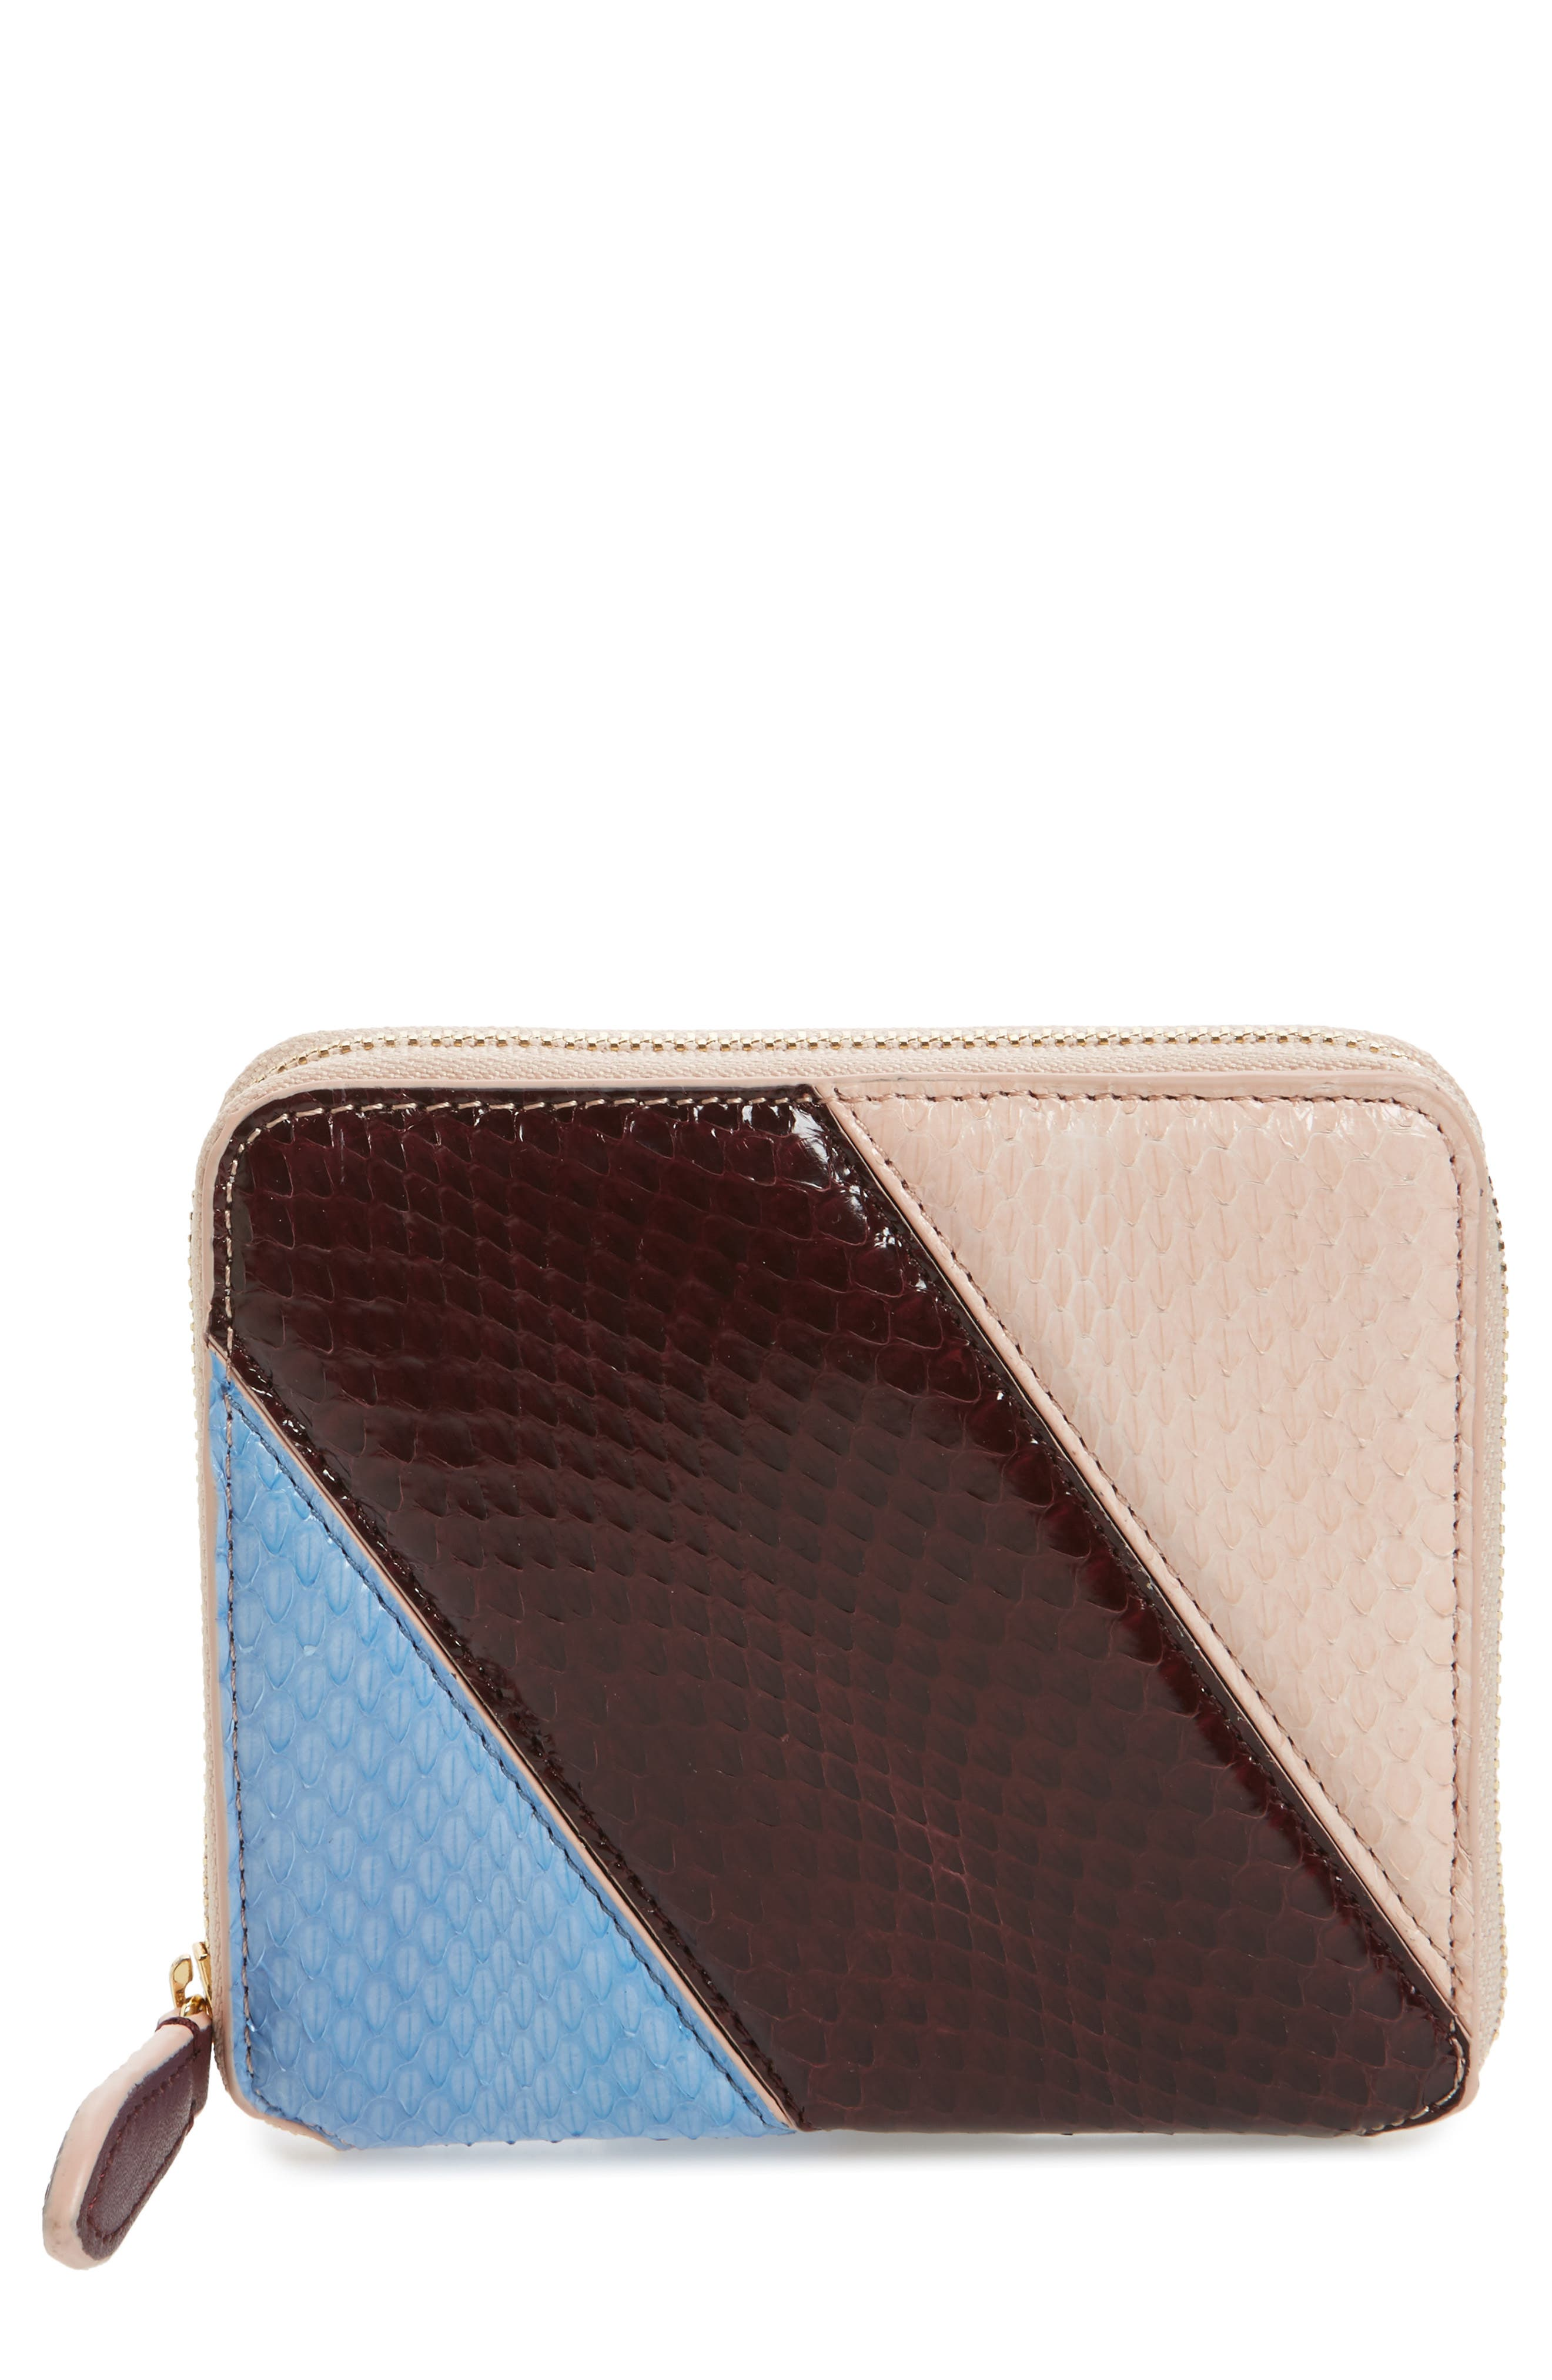 Small Za Genuine Snakeskin Wallet,                         Main,                         color, Powder Blue/ Bordeaux/ Pink